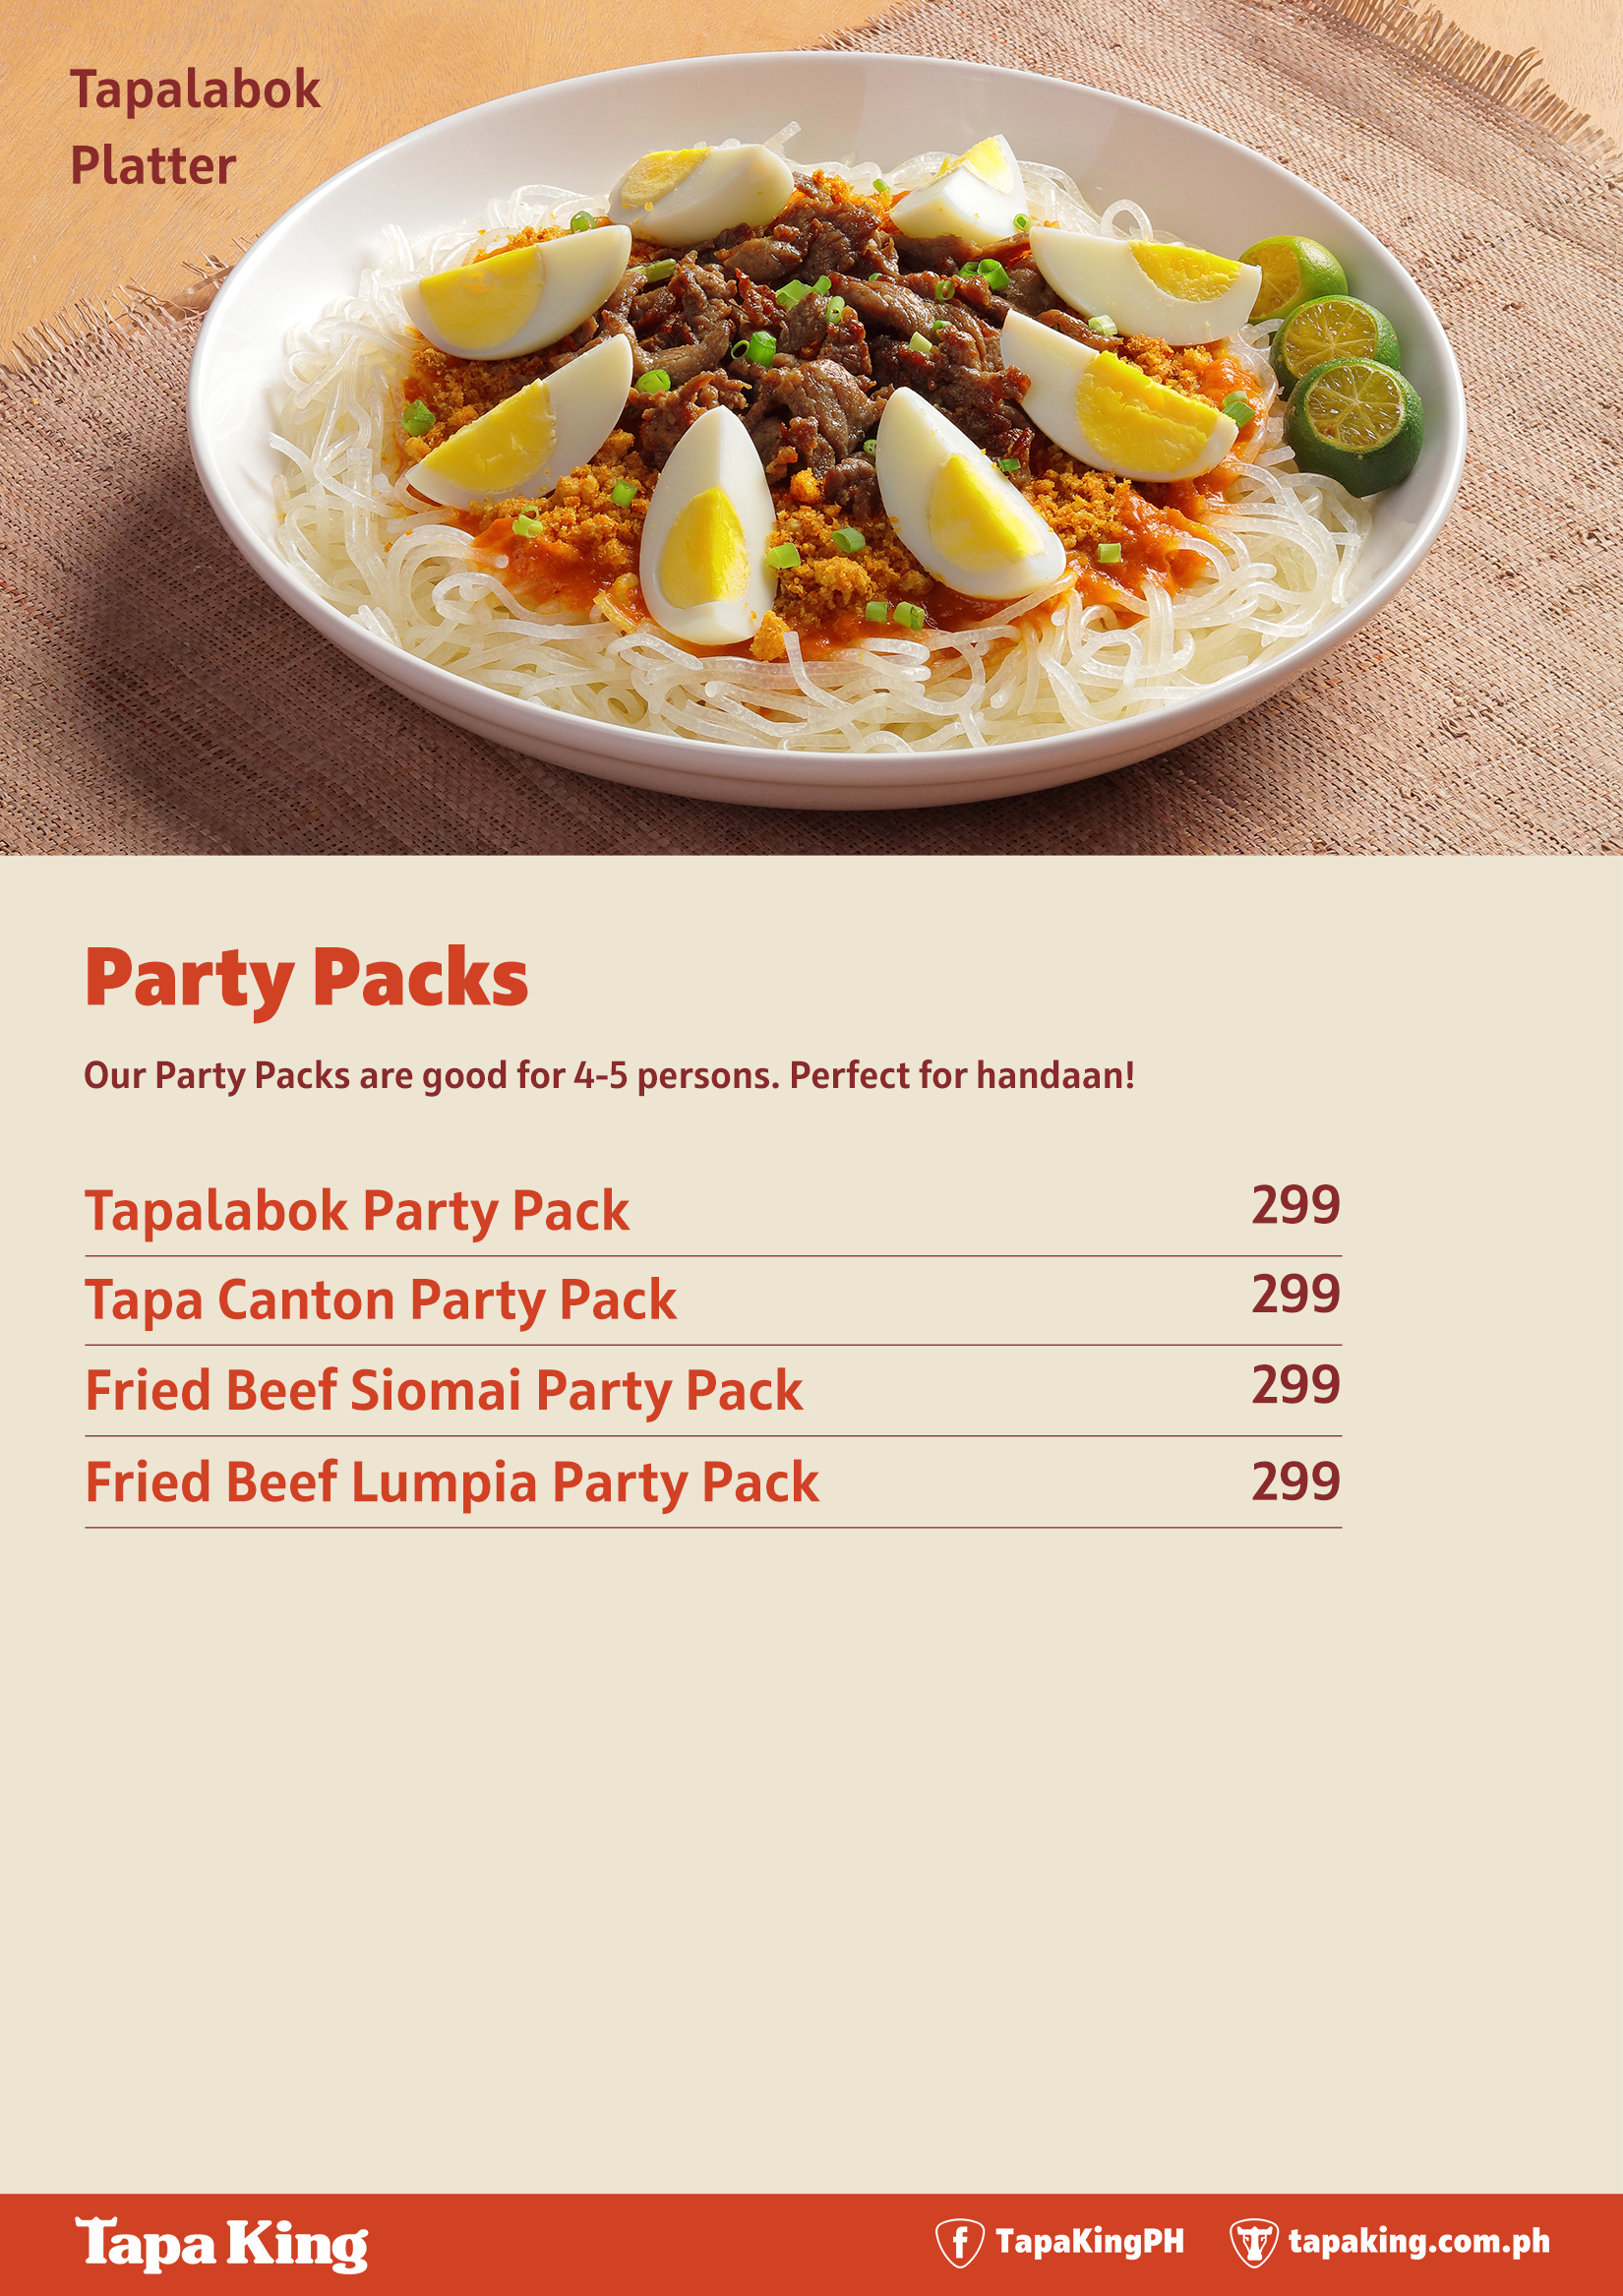 Party Packs